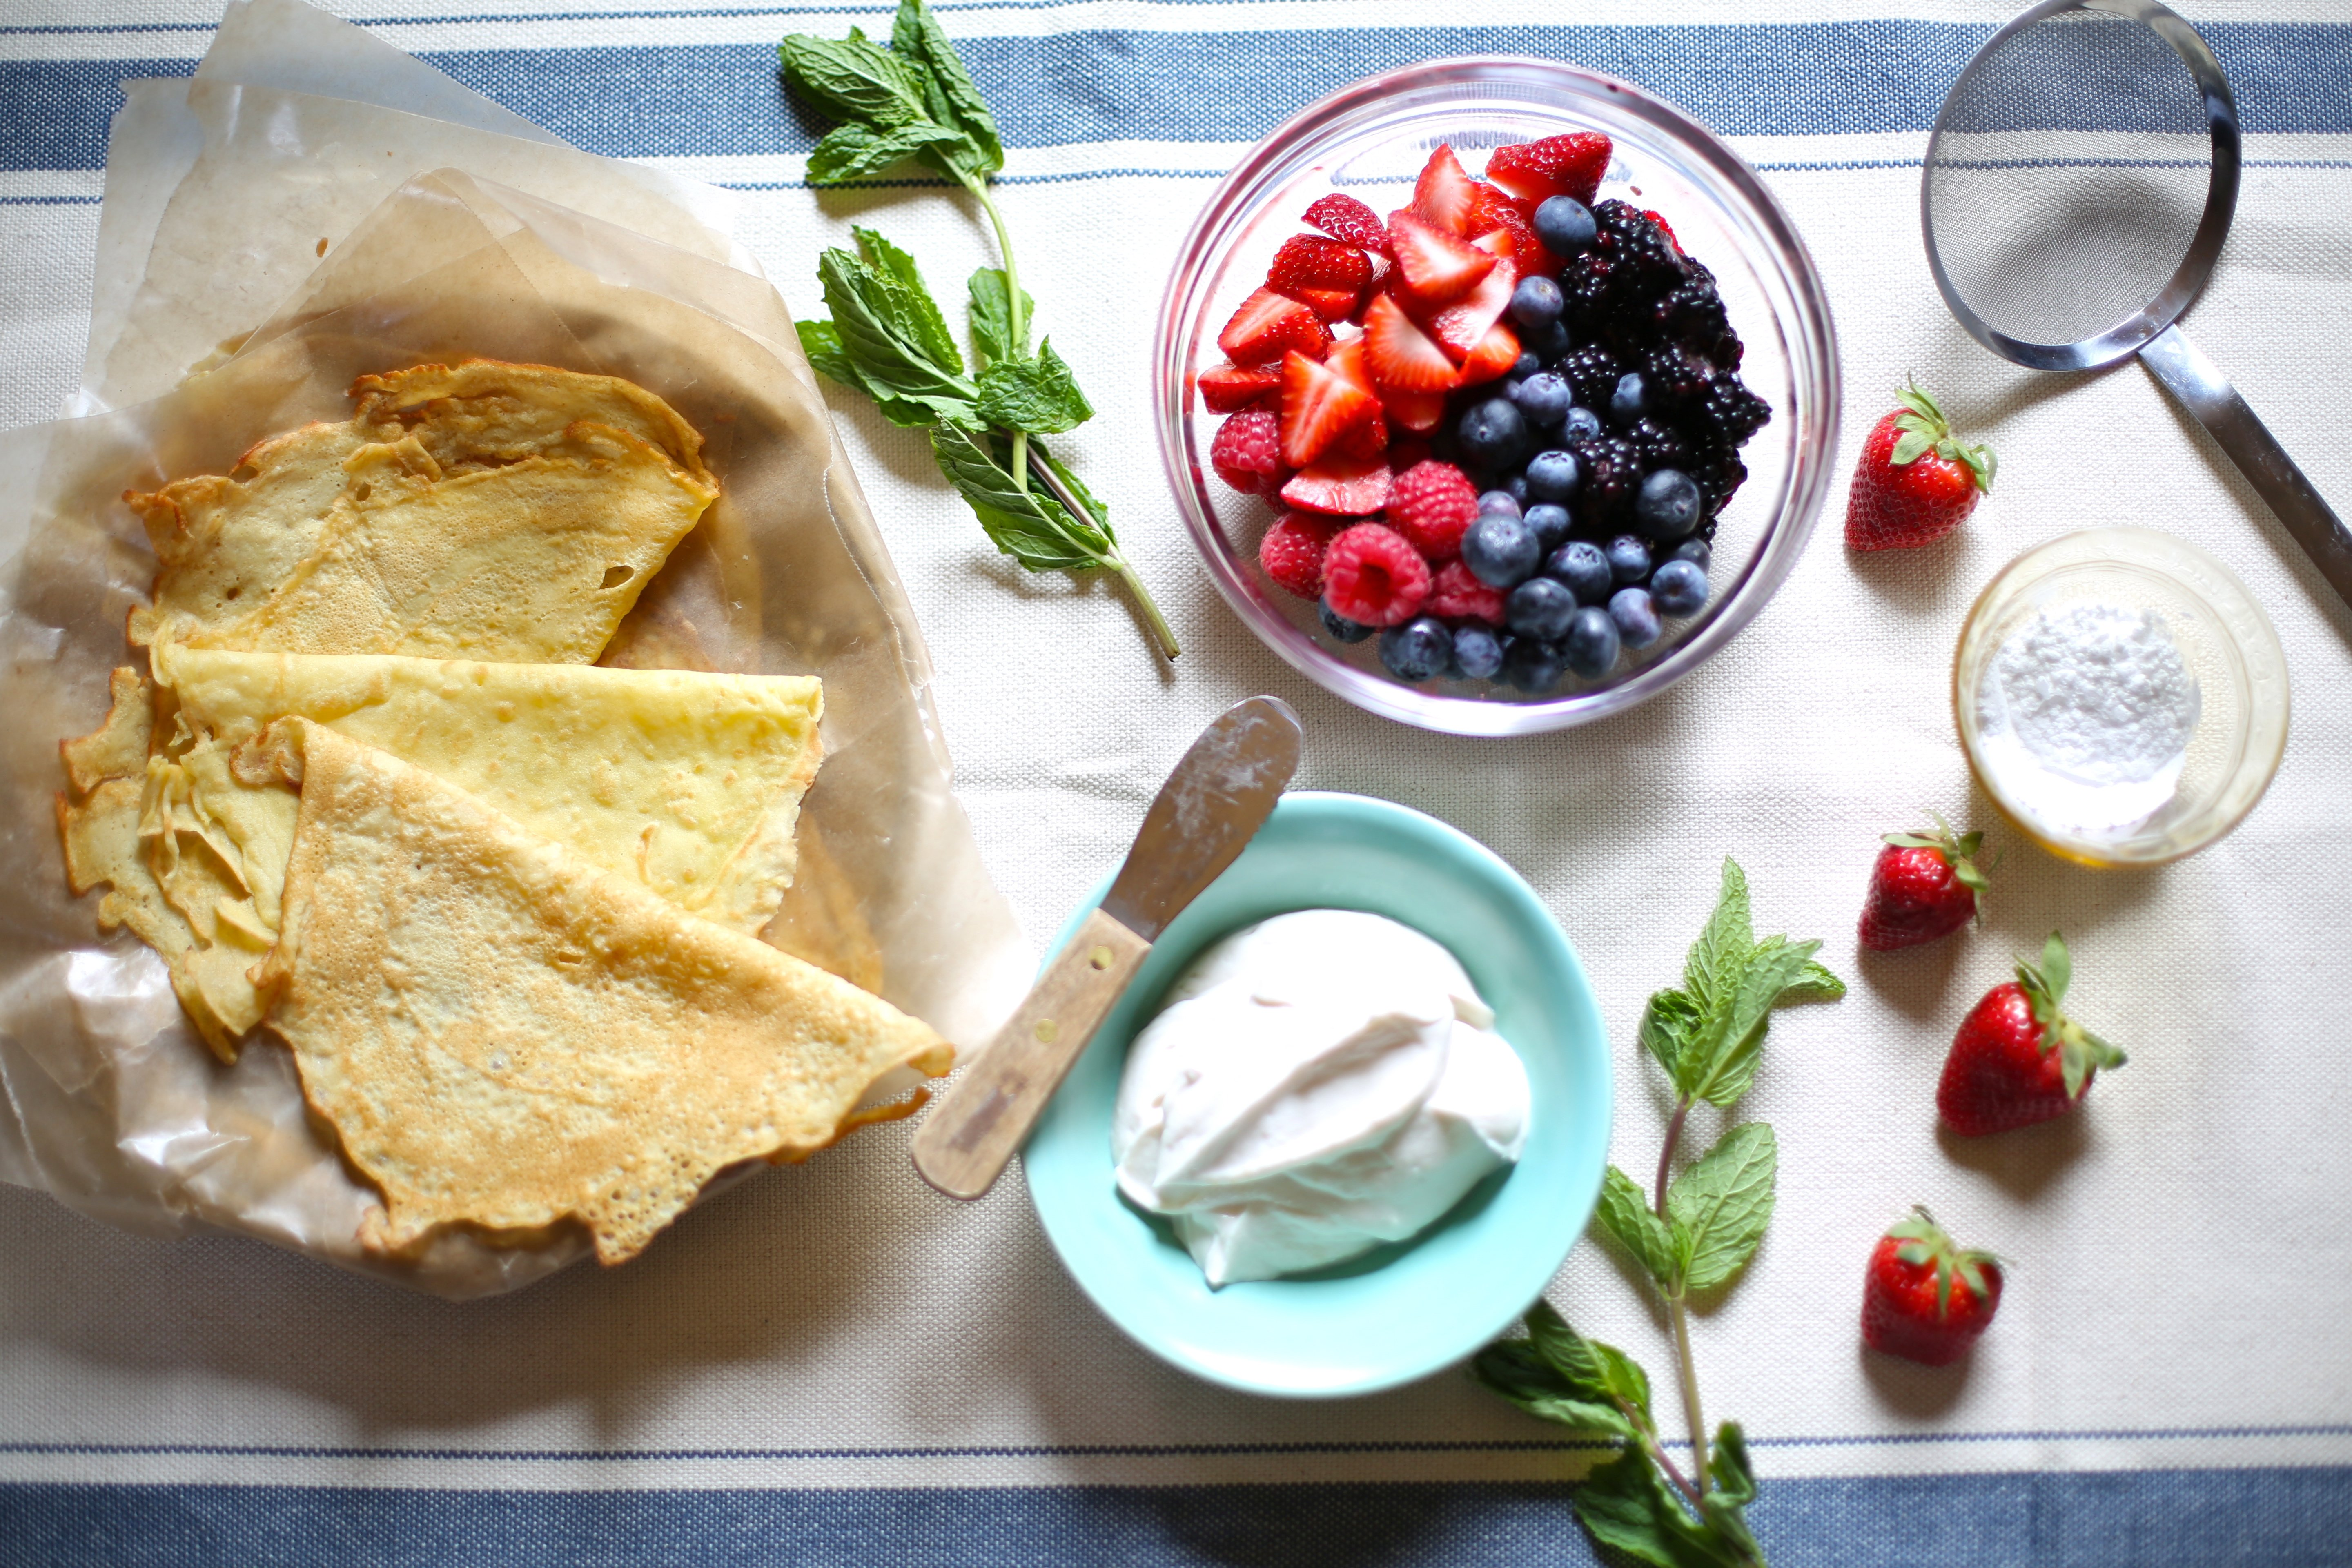 ingredients for crepes and berries and cream on a table, ready for serving.